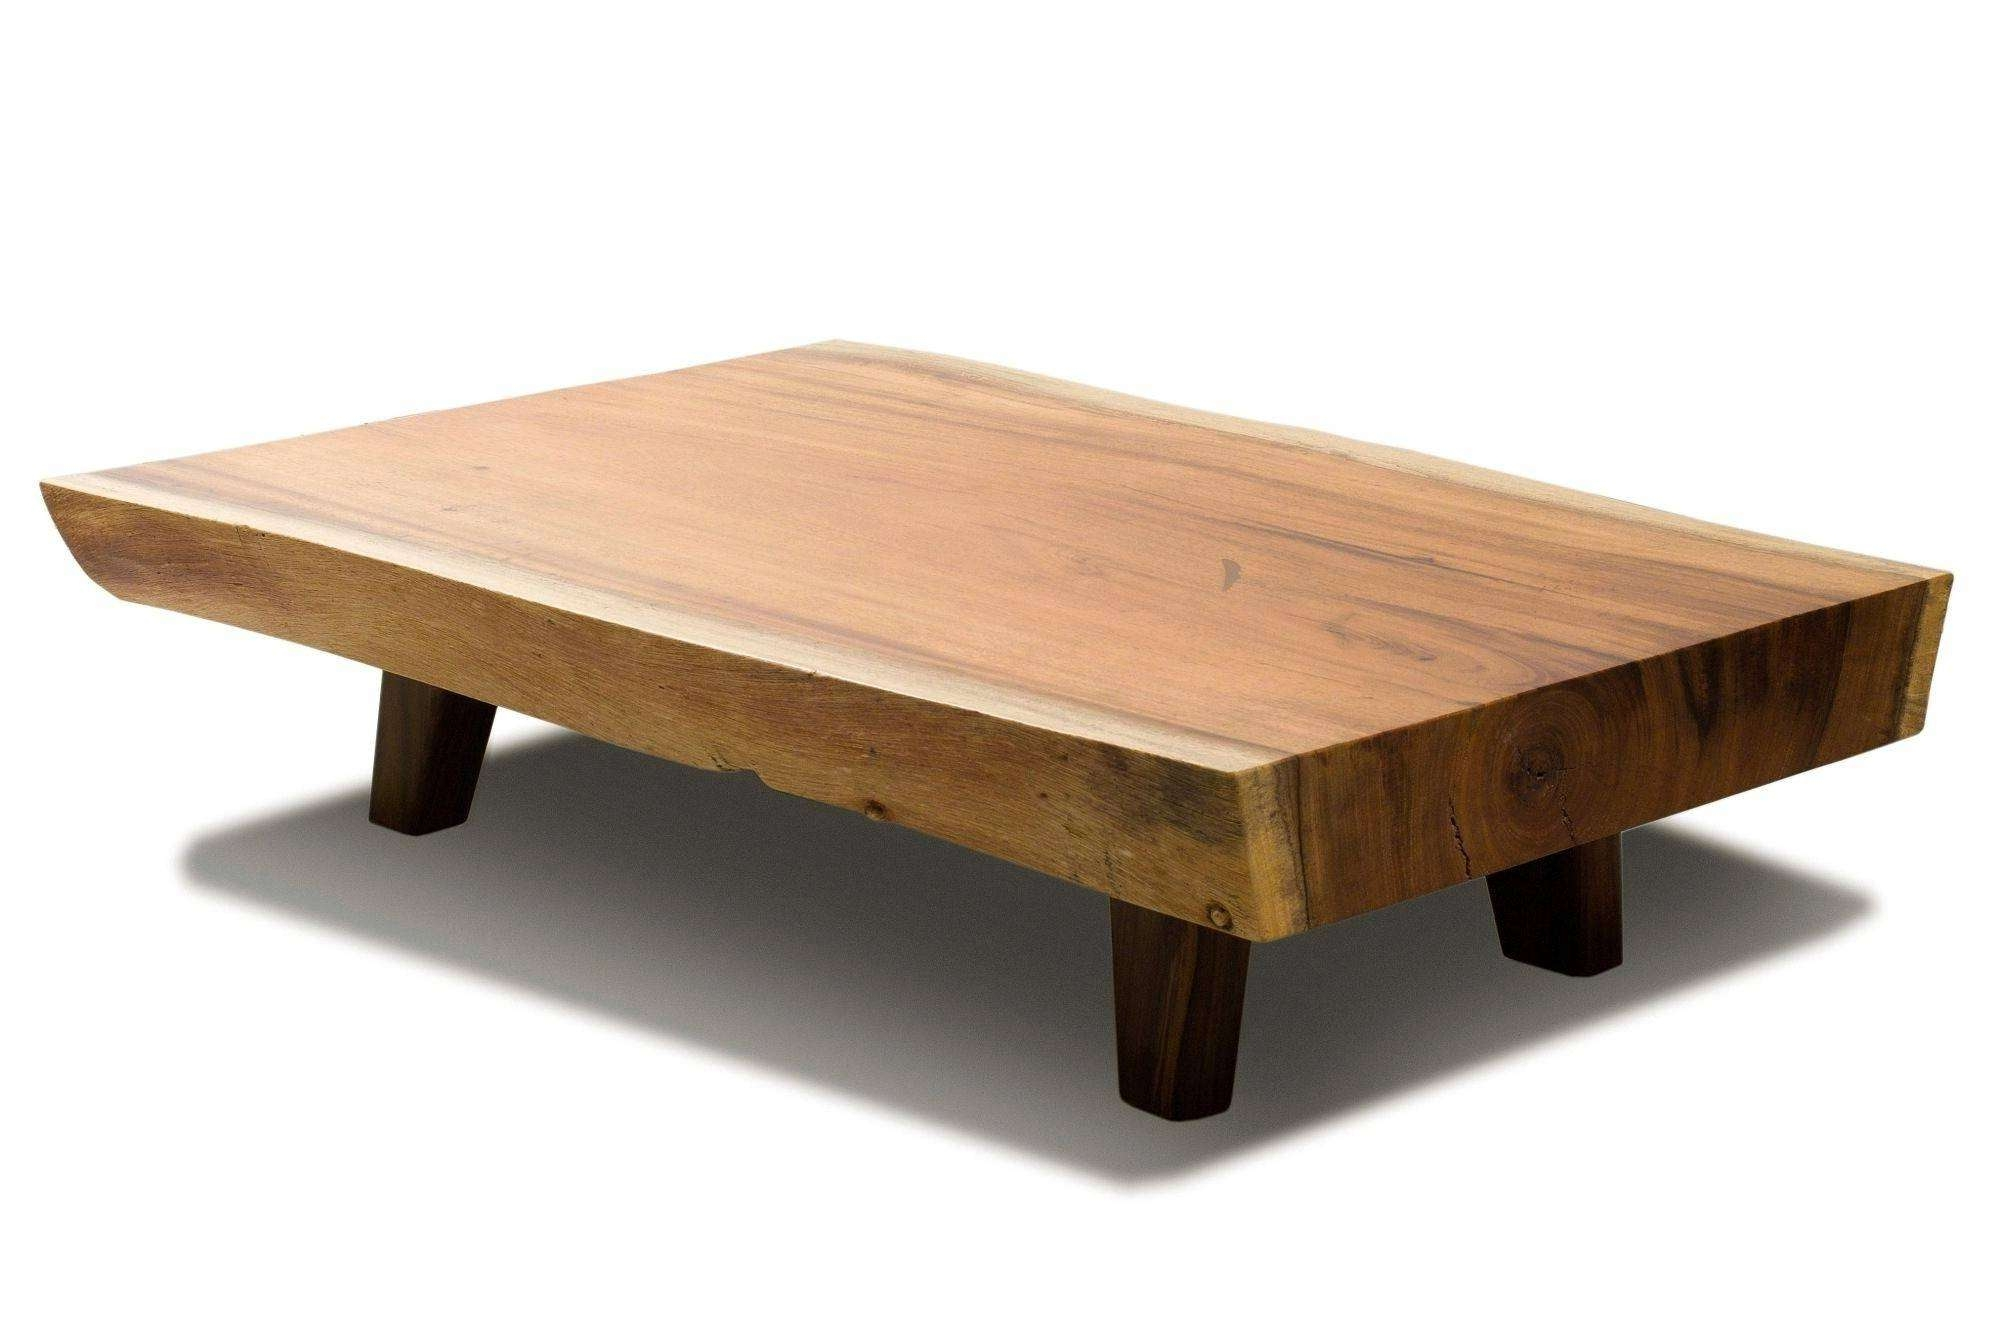 Trendy Large Low Wood Coffee Tables In Coffee Table : Popular Large Low Wood Coffee Tables Raw Edge Table (View 2 of 20)